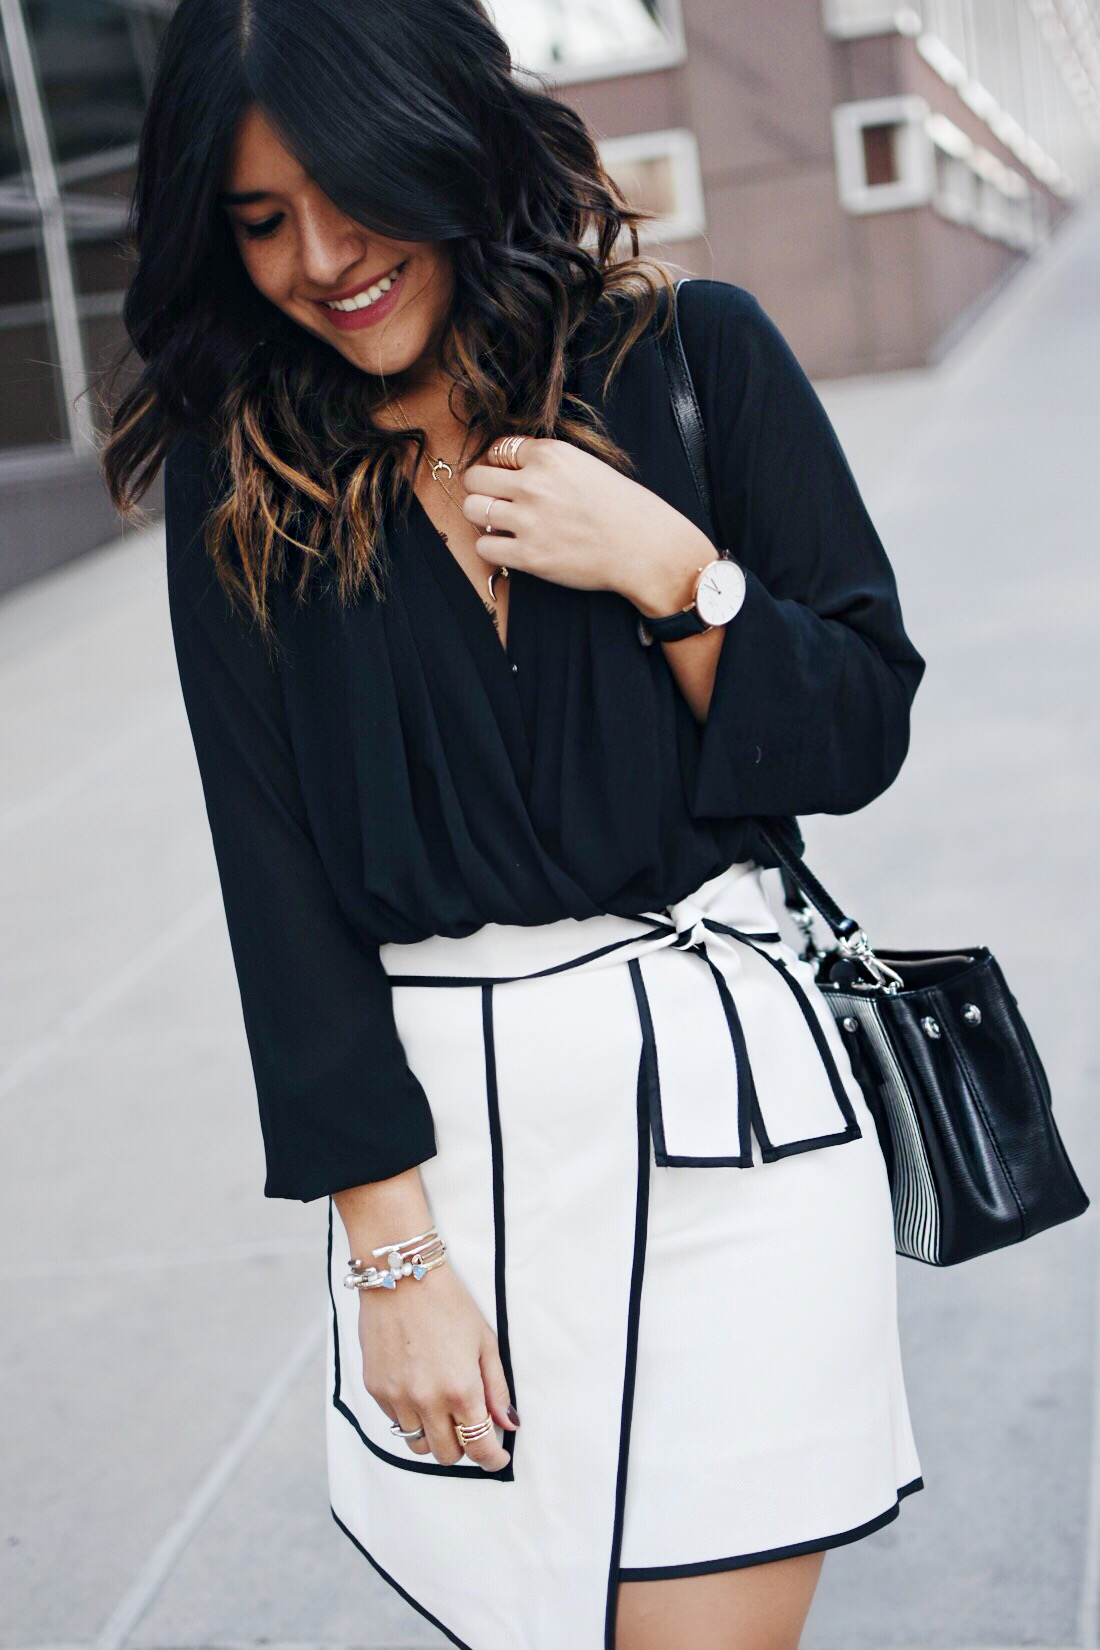 A BLACK AND WHITE OUTFIT FOR THE HOLIDAYS